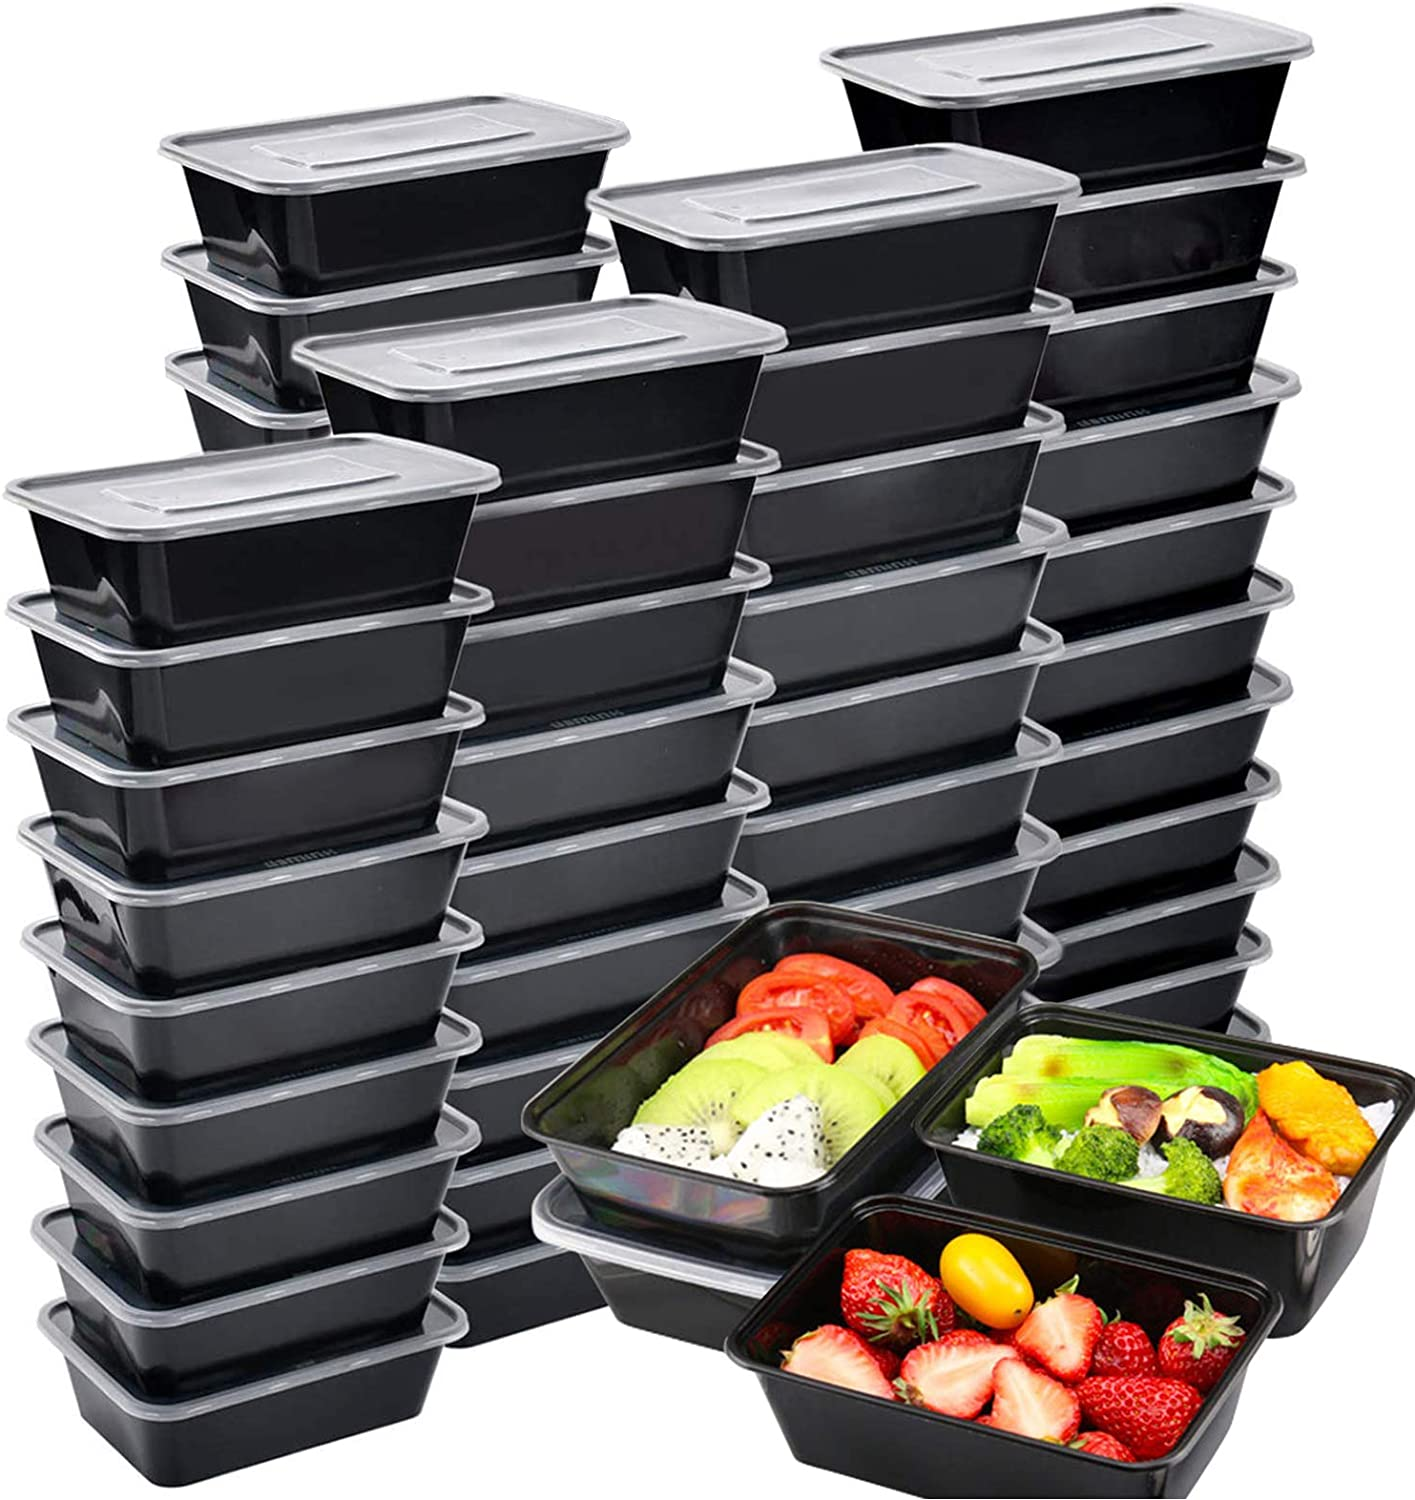 Meal Prep Containers 50pk, Plastic Salad Lunch Food Storage Container with Lids, Disposable Bento Boxes Freezer Frozen Meals Containers, Reusable Healthy Box for Dishwasher Safe(750ML/ 26 OZ)